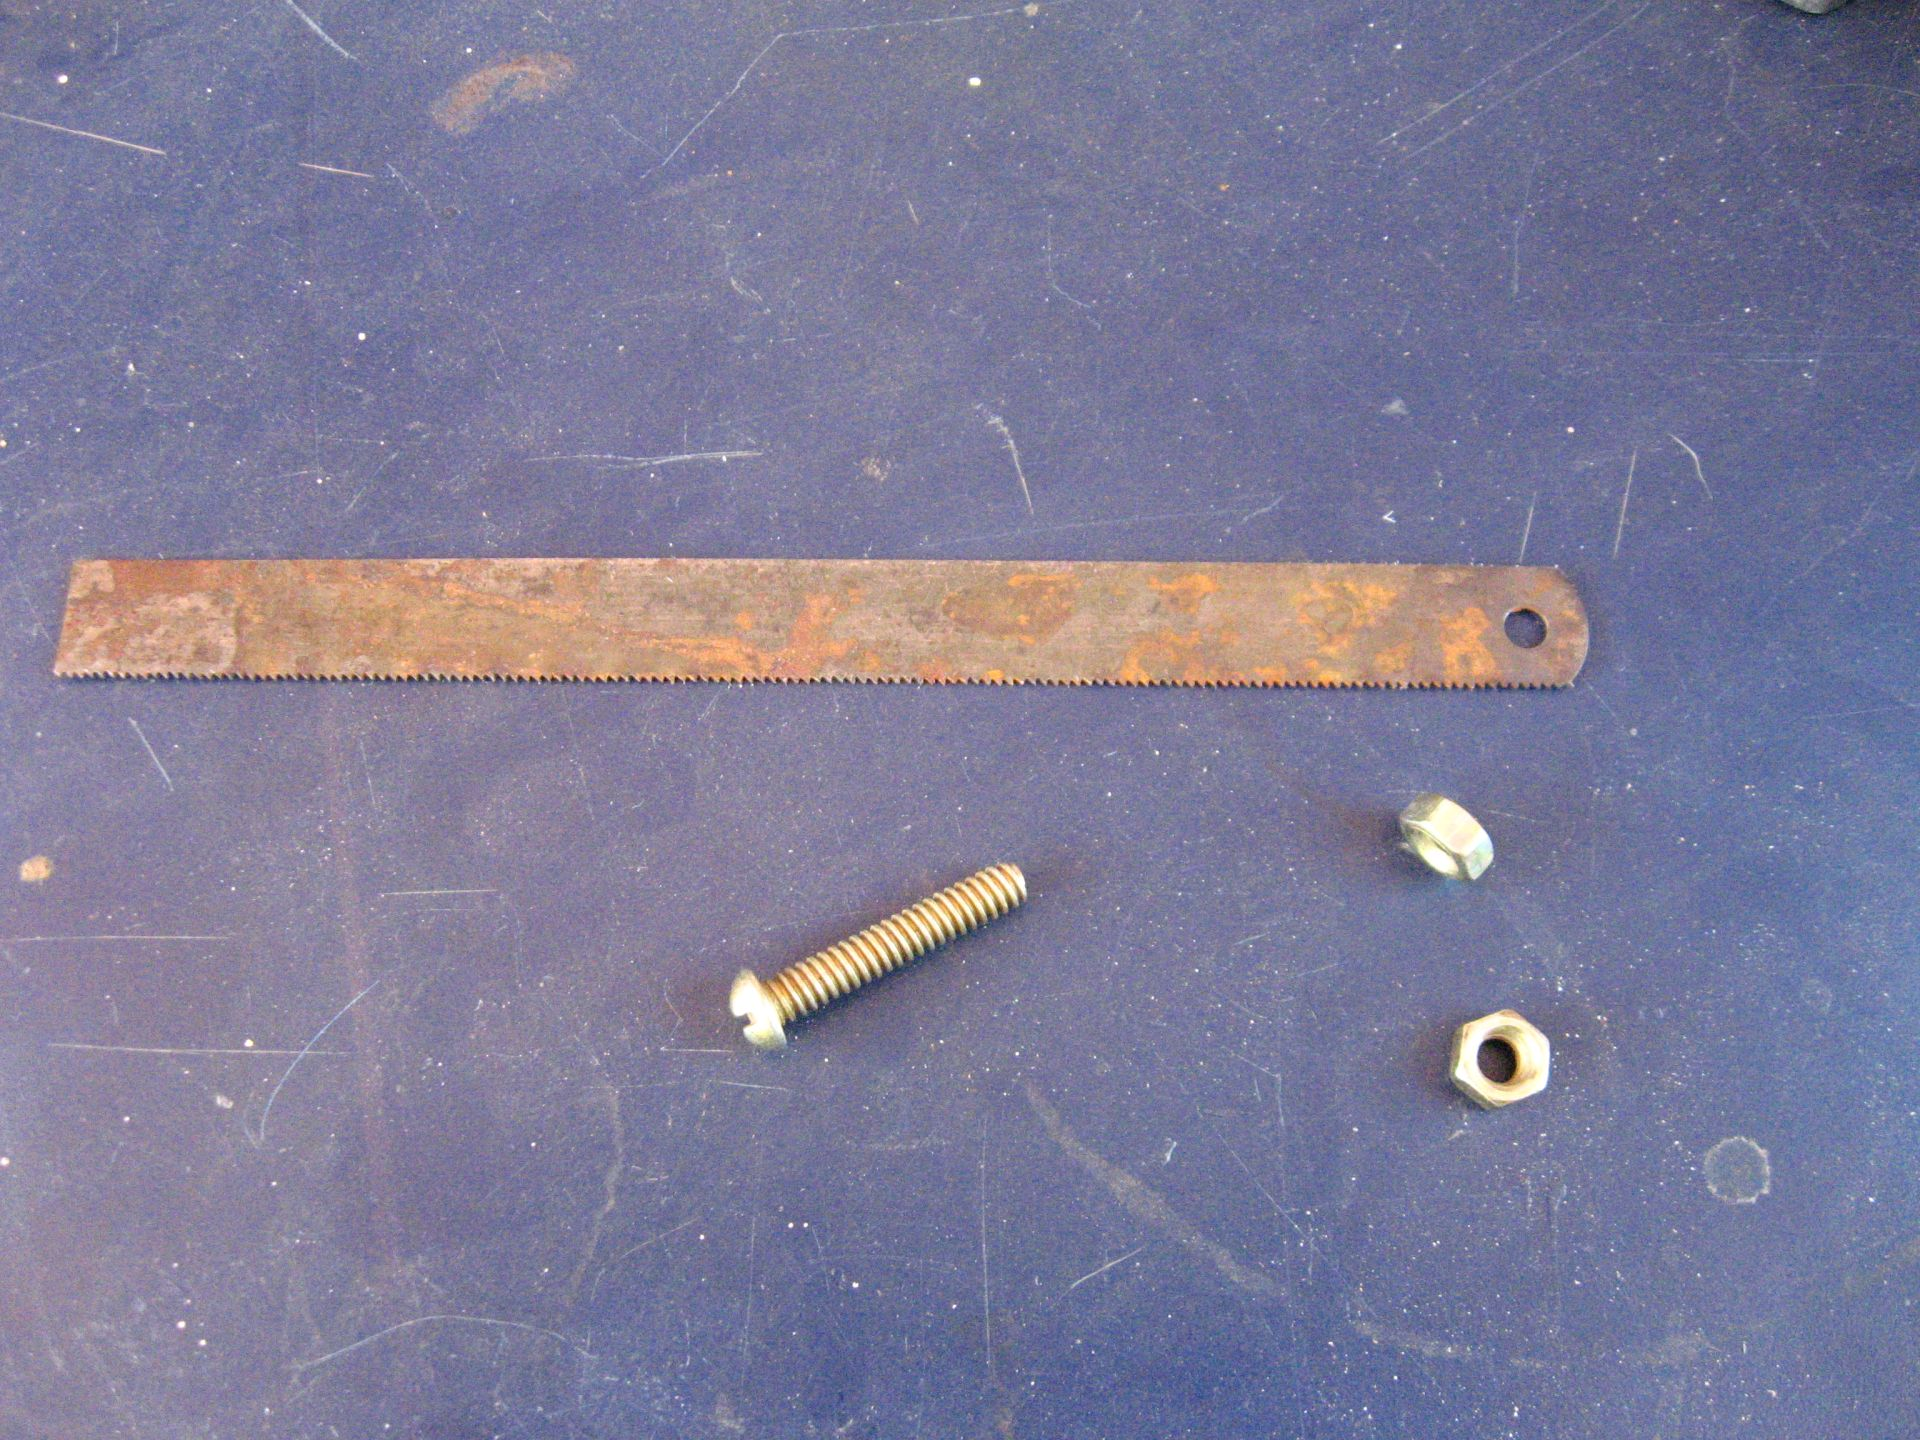 Picture of 3 Mm Dia Screw As Handle for the Blade